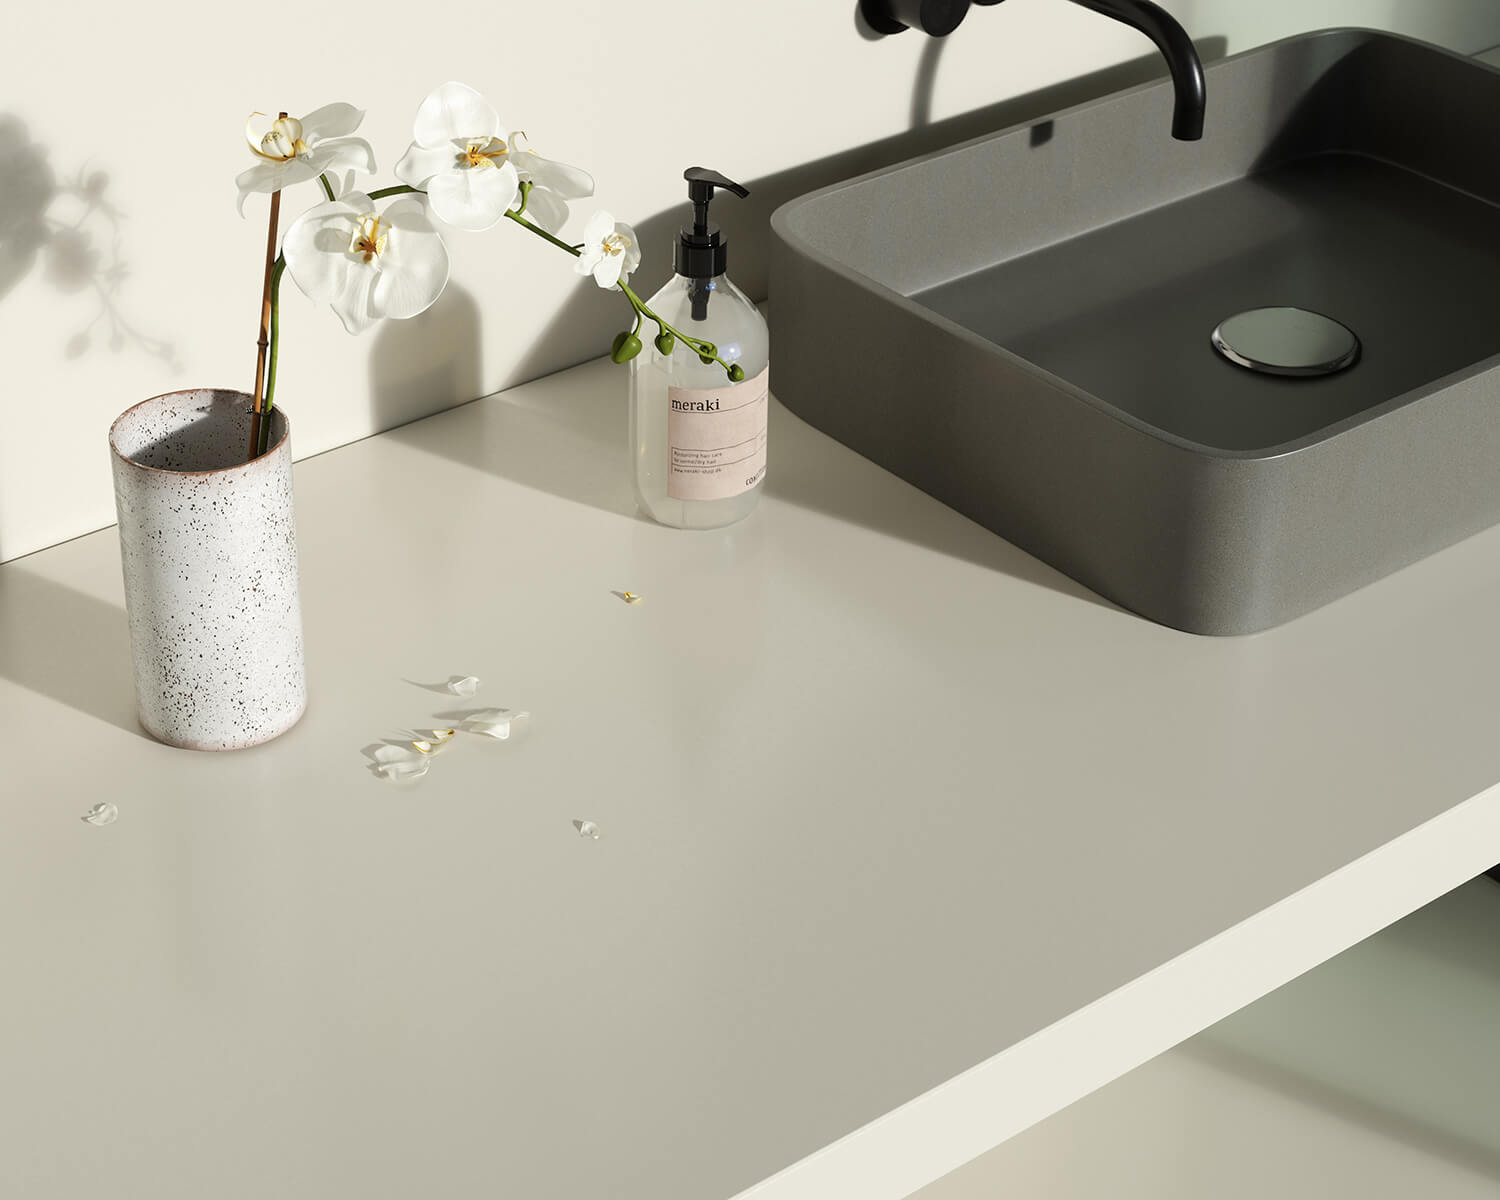 White Silestone countertop with grey sink and white flower in a white vase